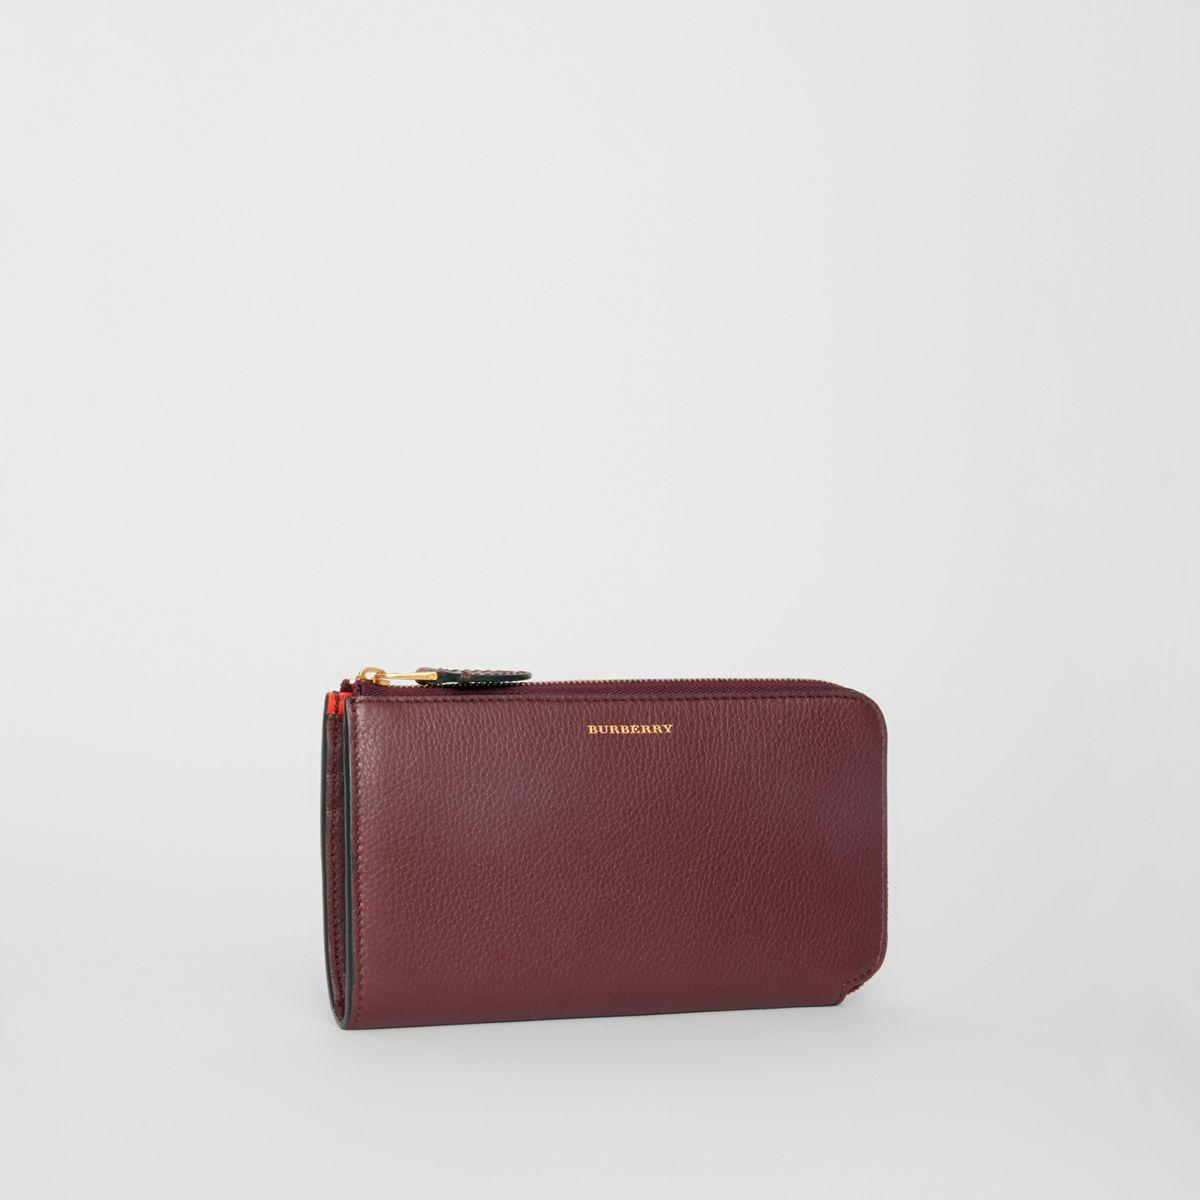 burberry two tone leather ziparound wallet and coin case